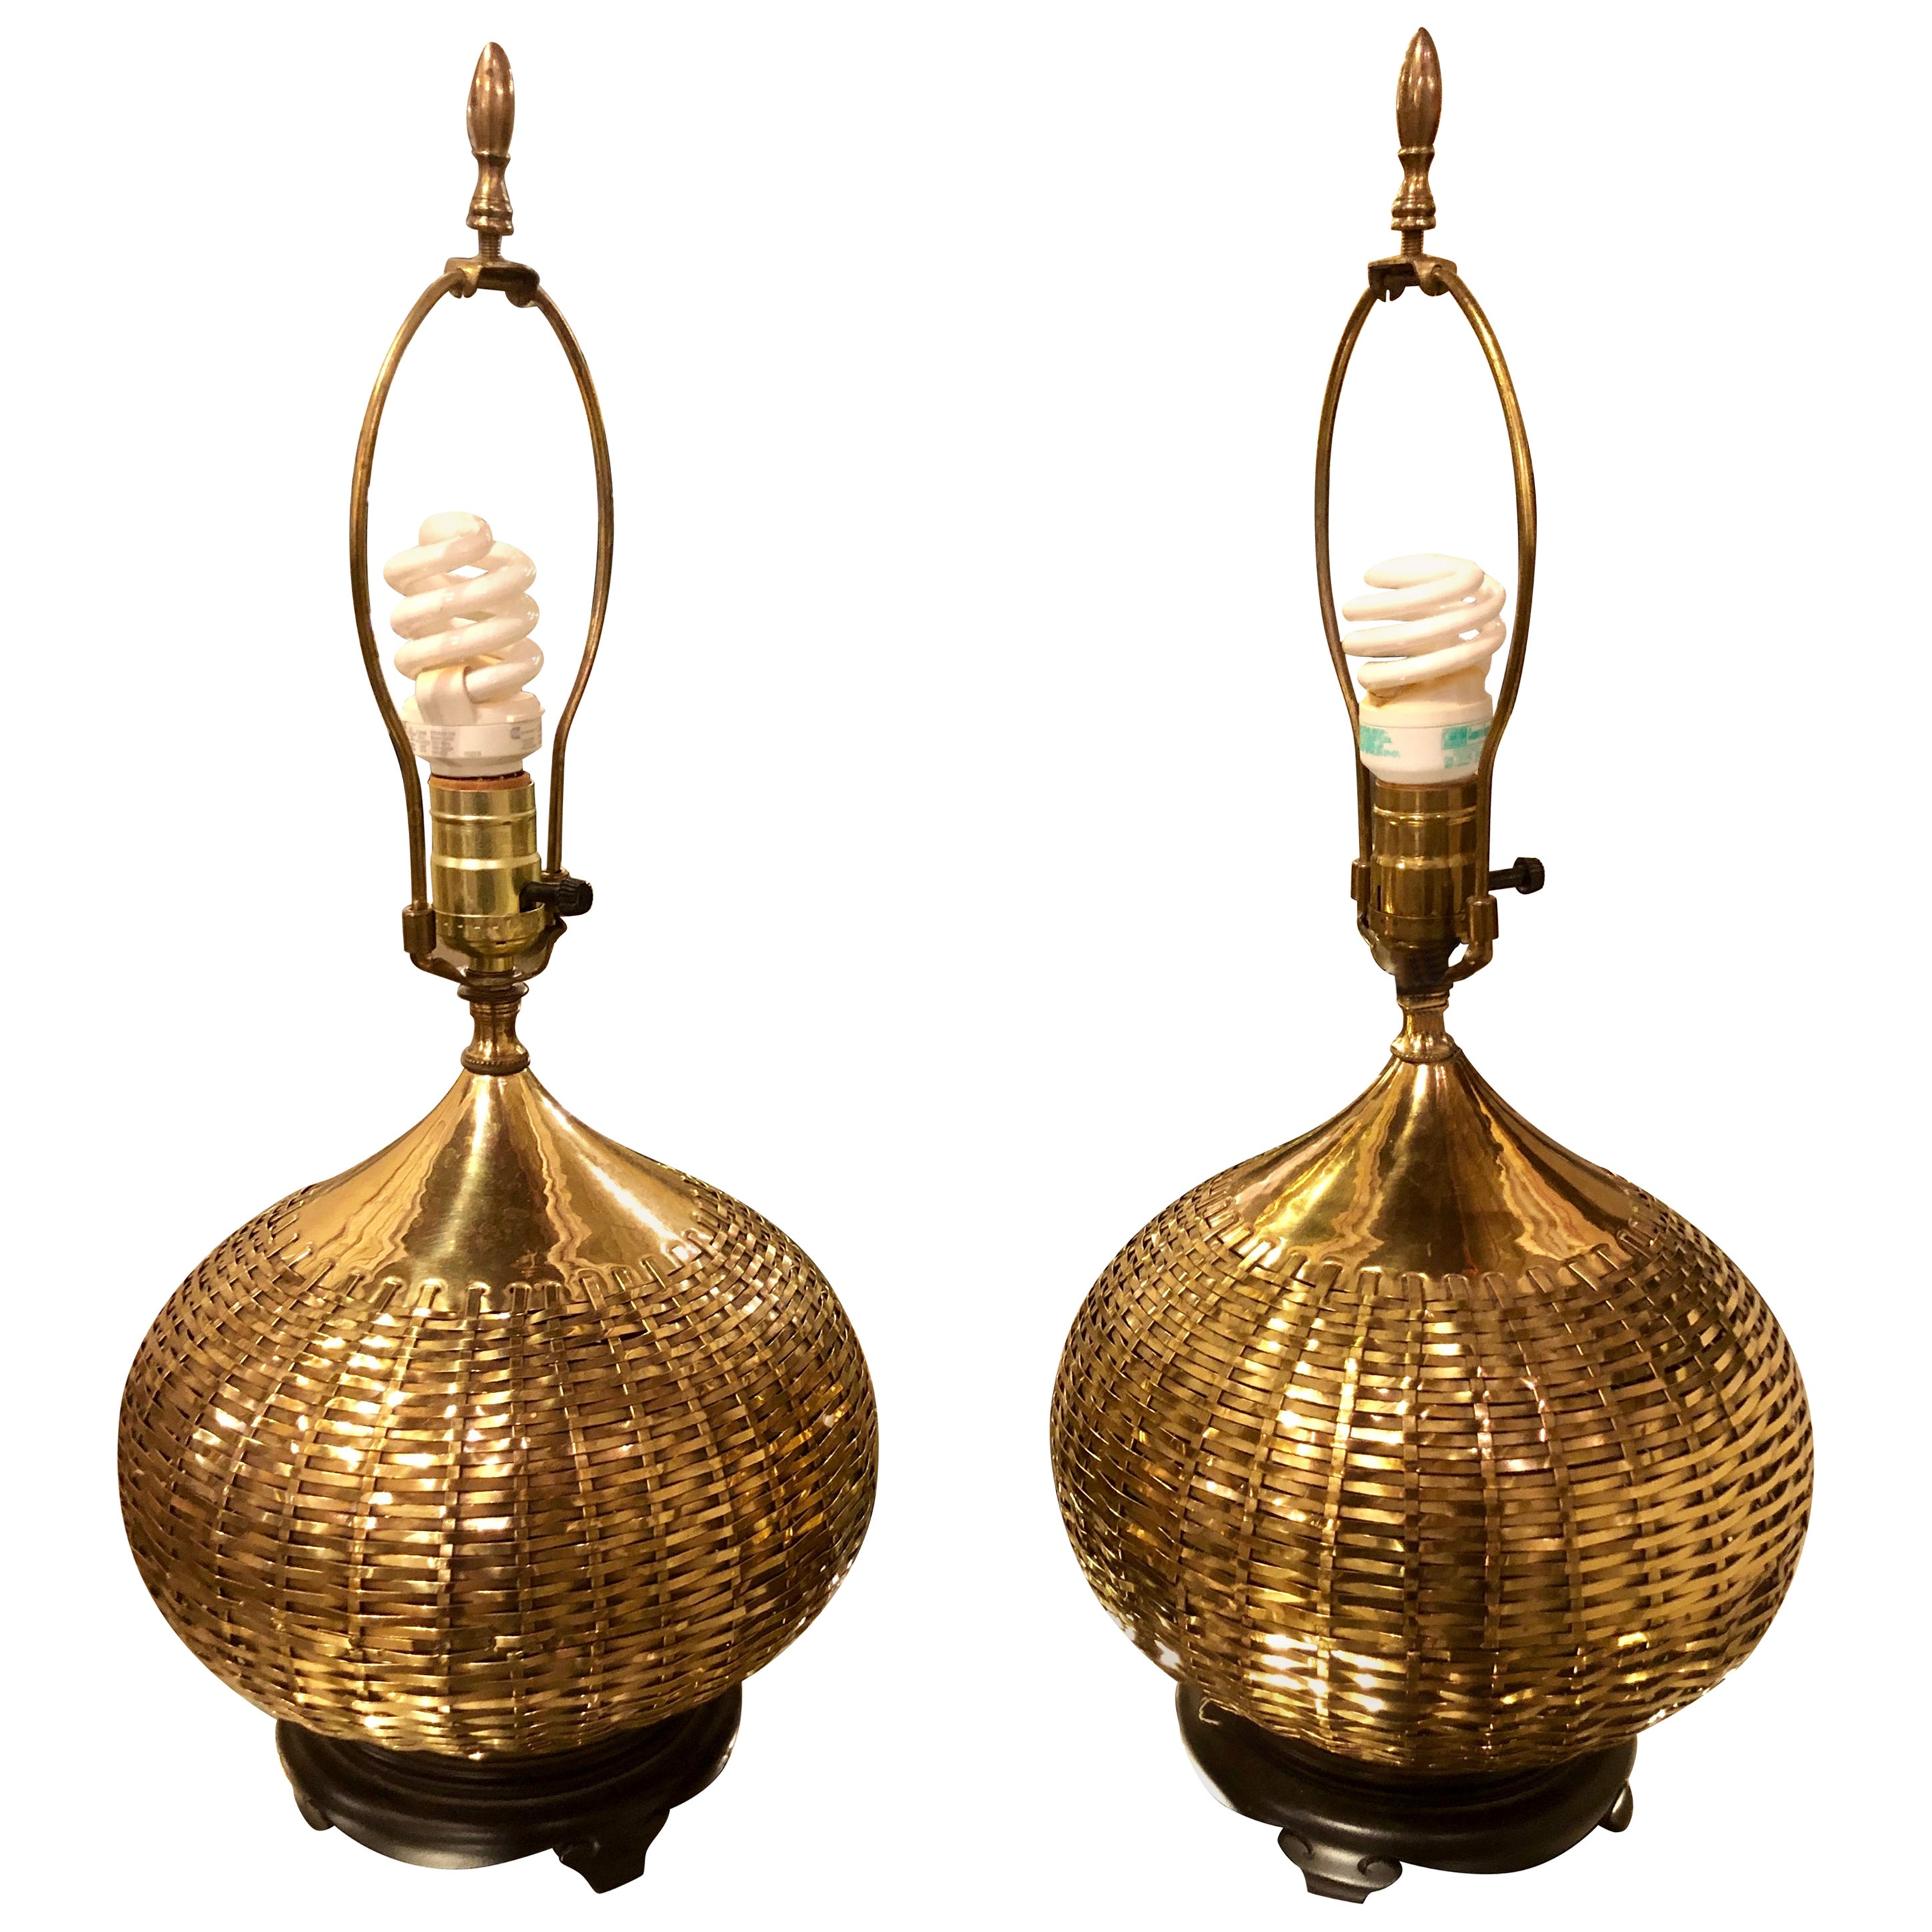 Pair of Hollywood Regency Asian Brass Basket Weave Table Lamps